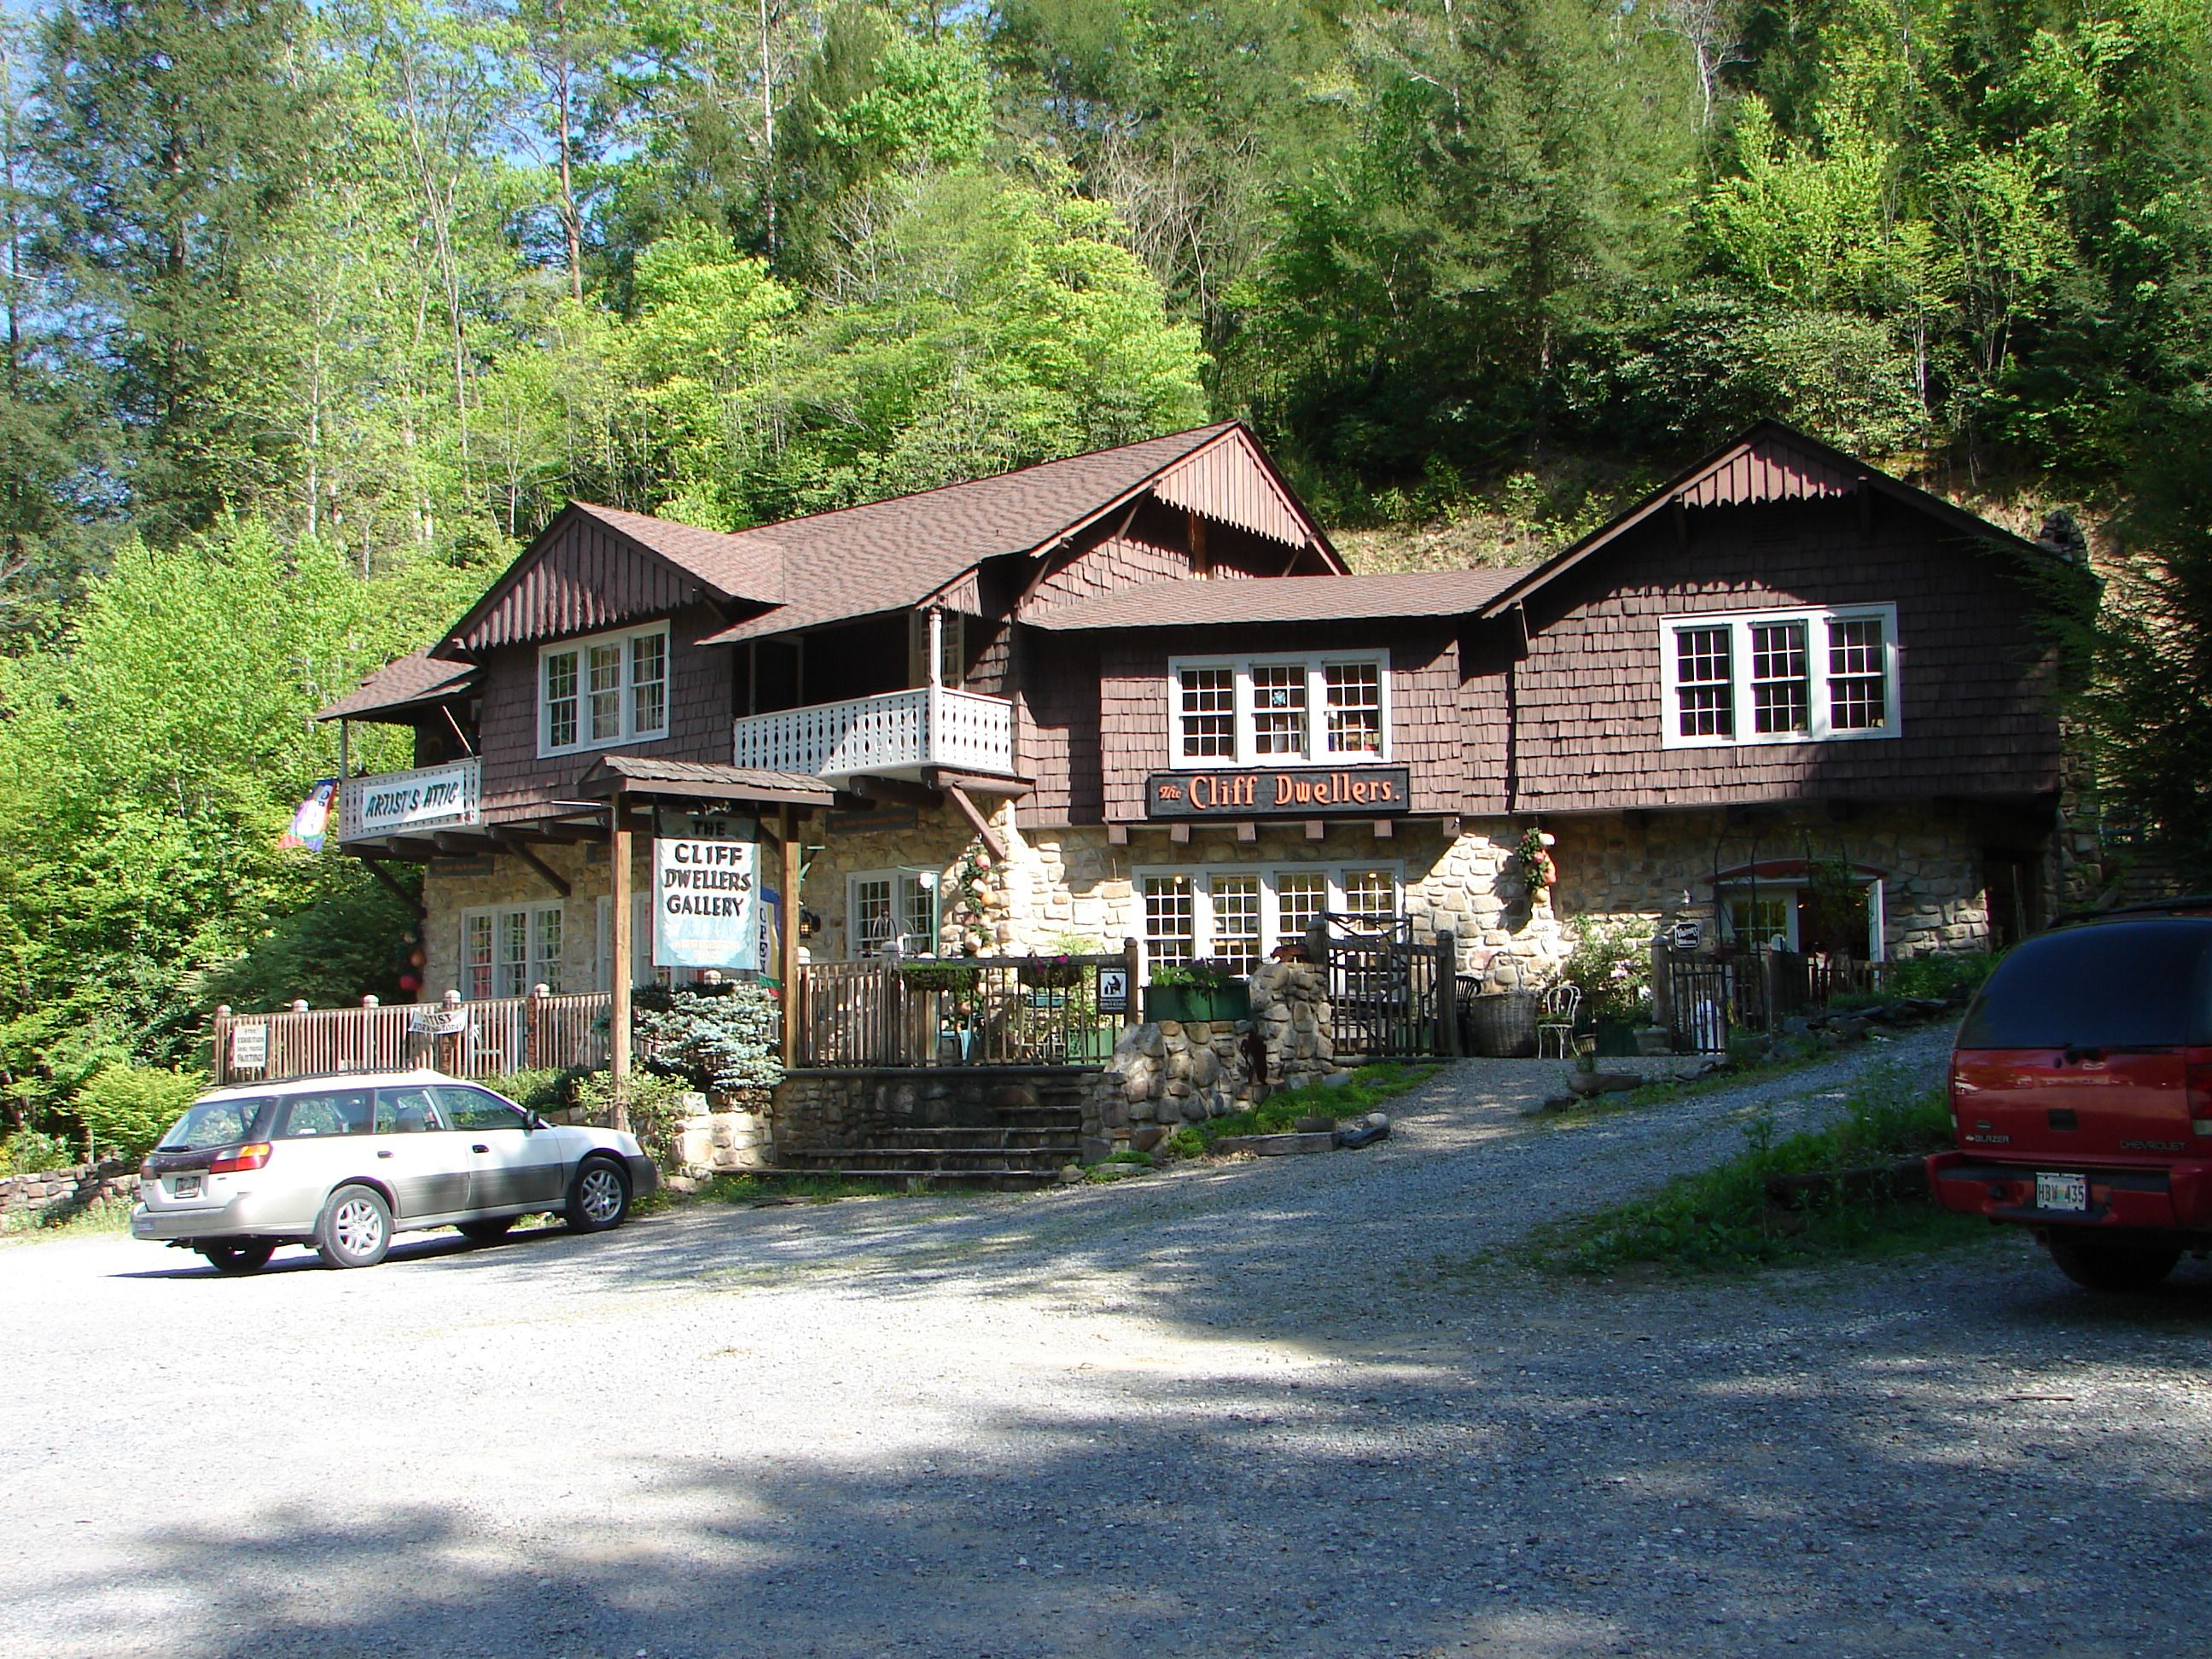 since historic mountain pin tn cabin escape rental gatlinburg cabins owner times local past to featuring dwellers smoky building gallery pat crafts cliff art kirchhoefer gatlingburg fine